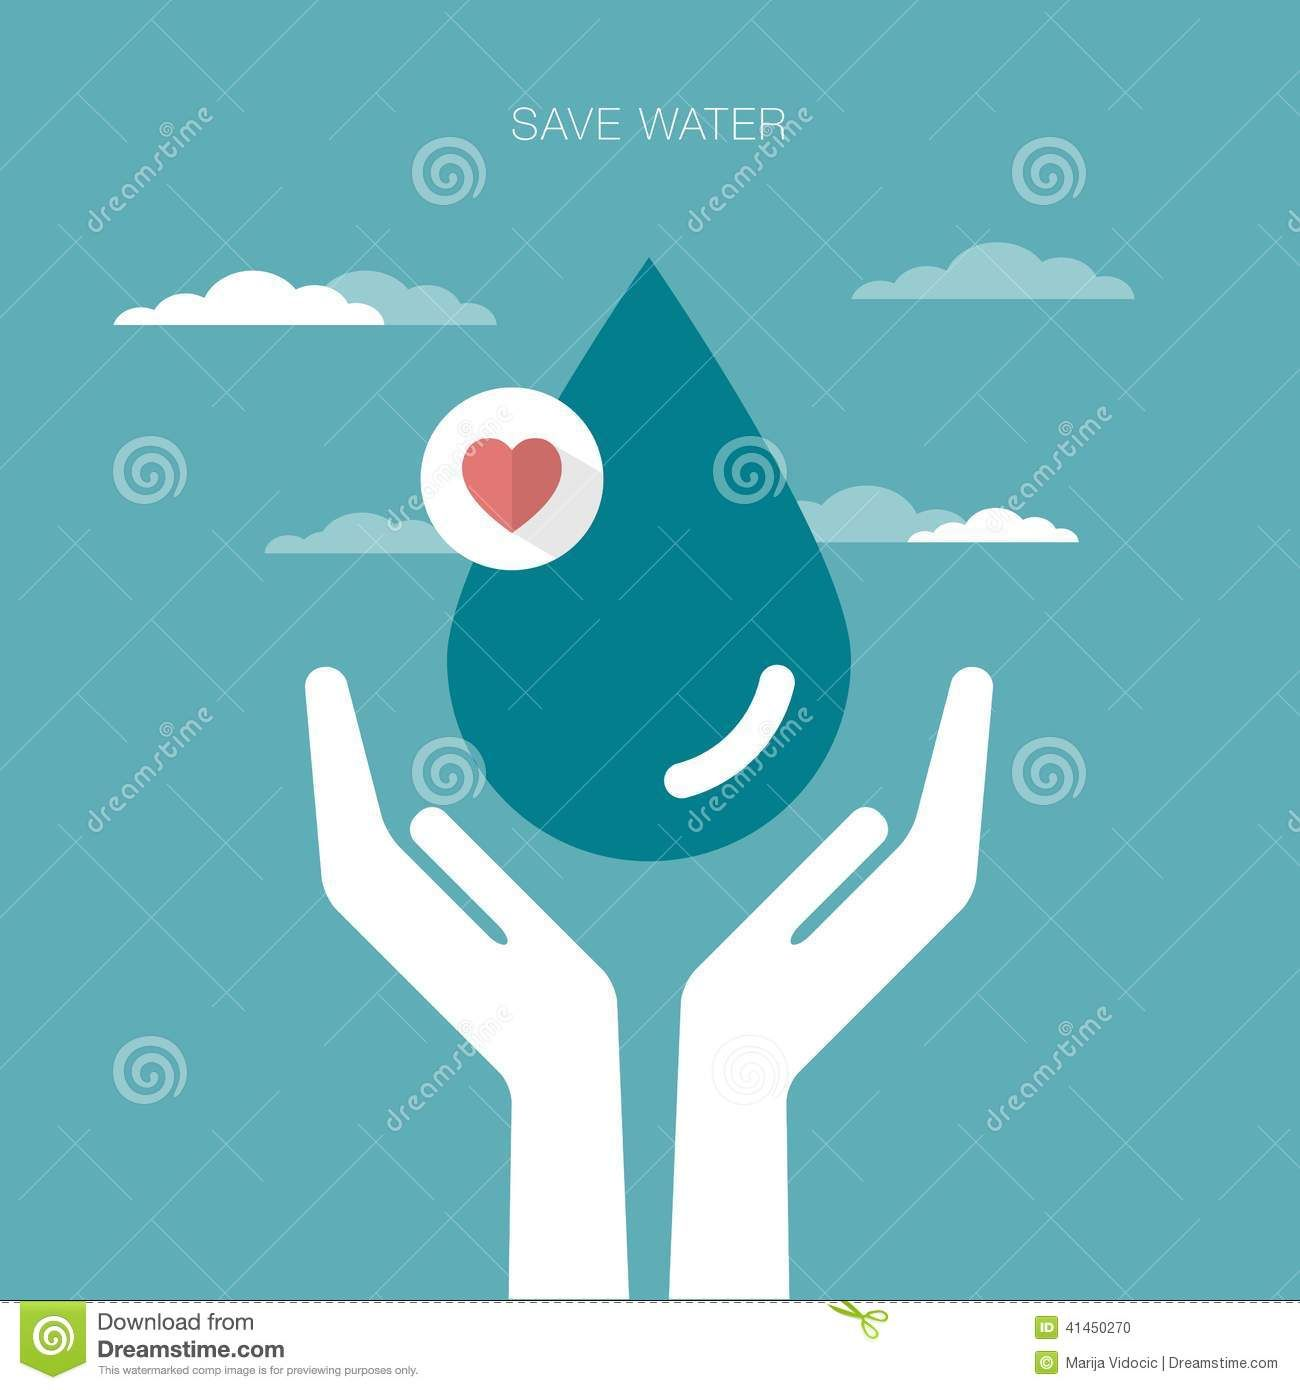 Poster design on save water - Water Posters Ideas Google Search